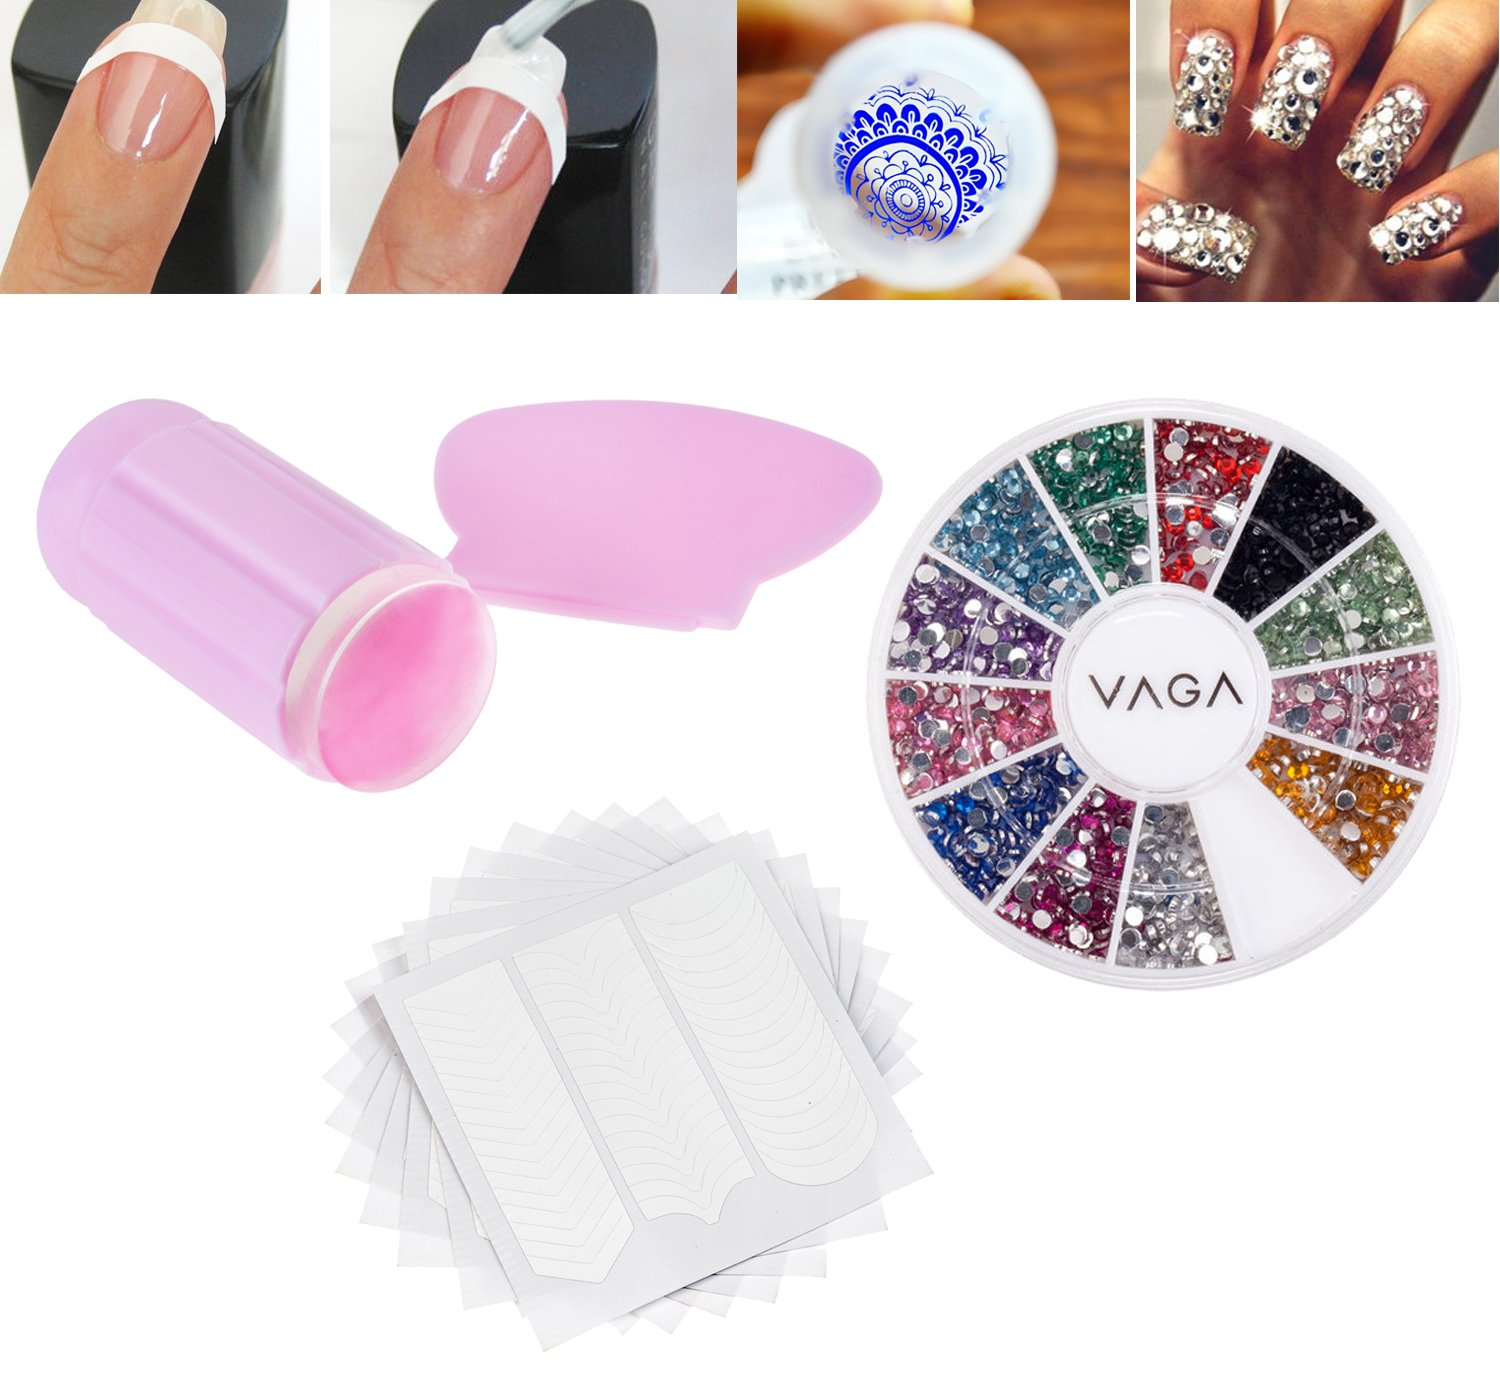 Amazing Value Professional Manicure Nail Art Salon Quality Tools Accessories Set Kit Including 10pcs Cards Each With 51pcs White Guides Stickers / Strips In 3 Different Shapes For French Nails And Lines Designs Application, Wheel With Rhinestones / Crystal